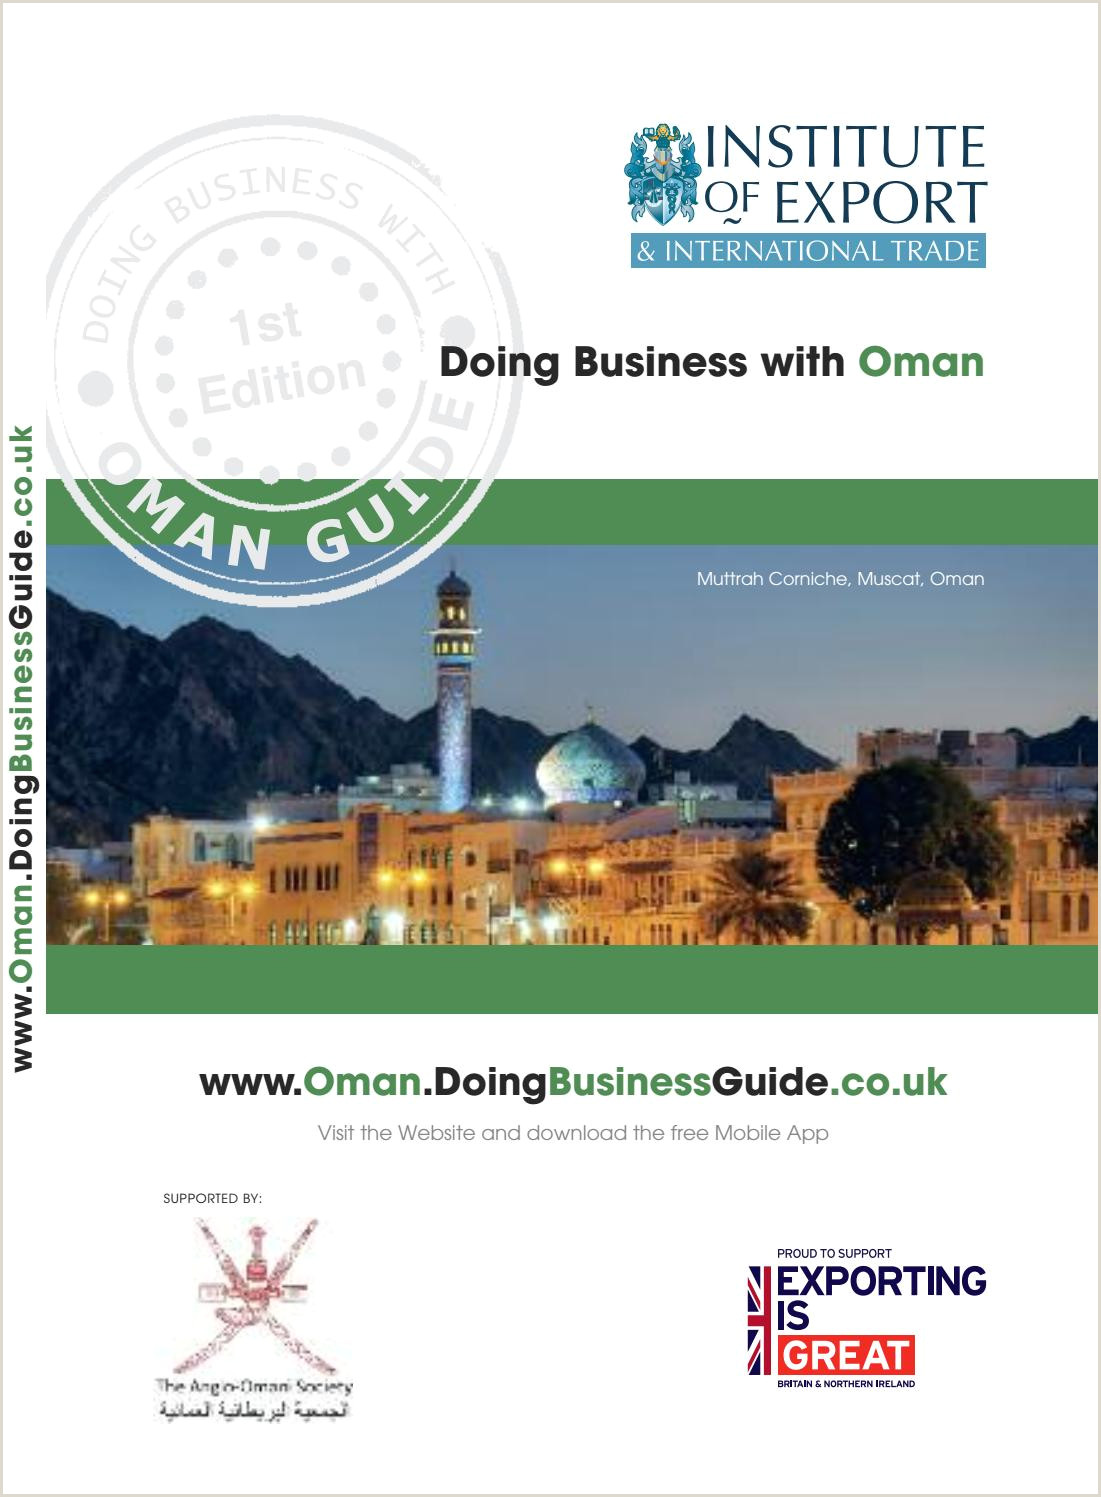 Best Business Cards Personal Trainer Doing Business With Oman Guide By Doing Business Guides Issuu